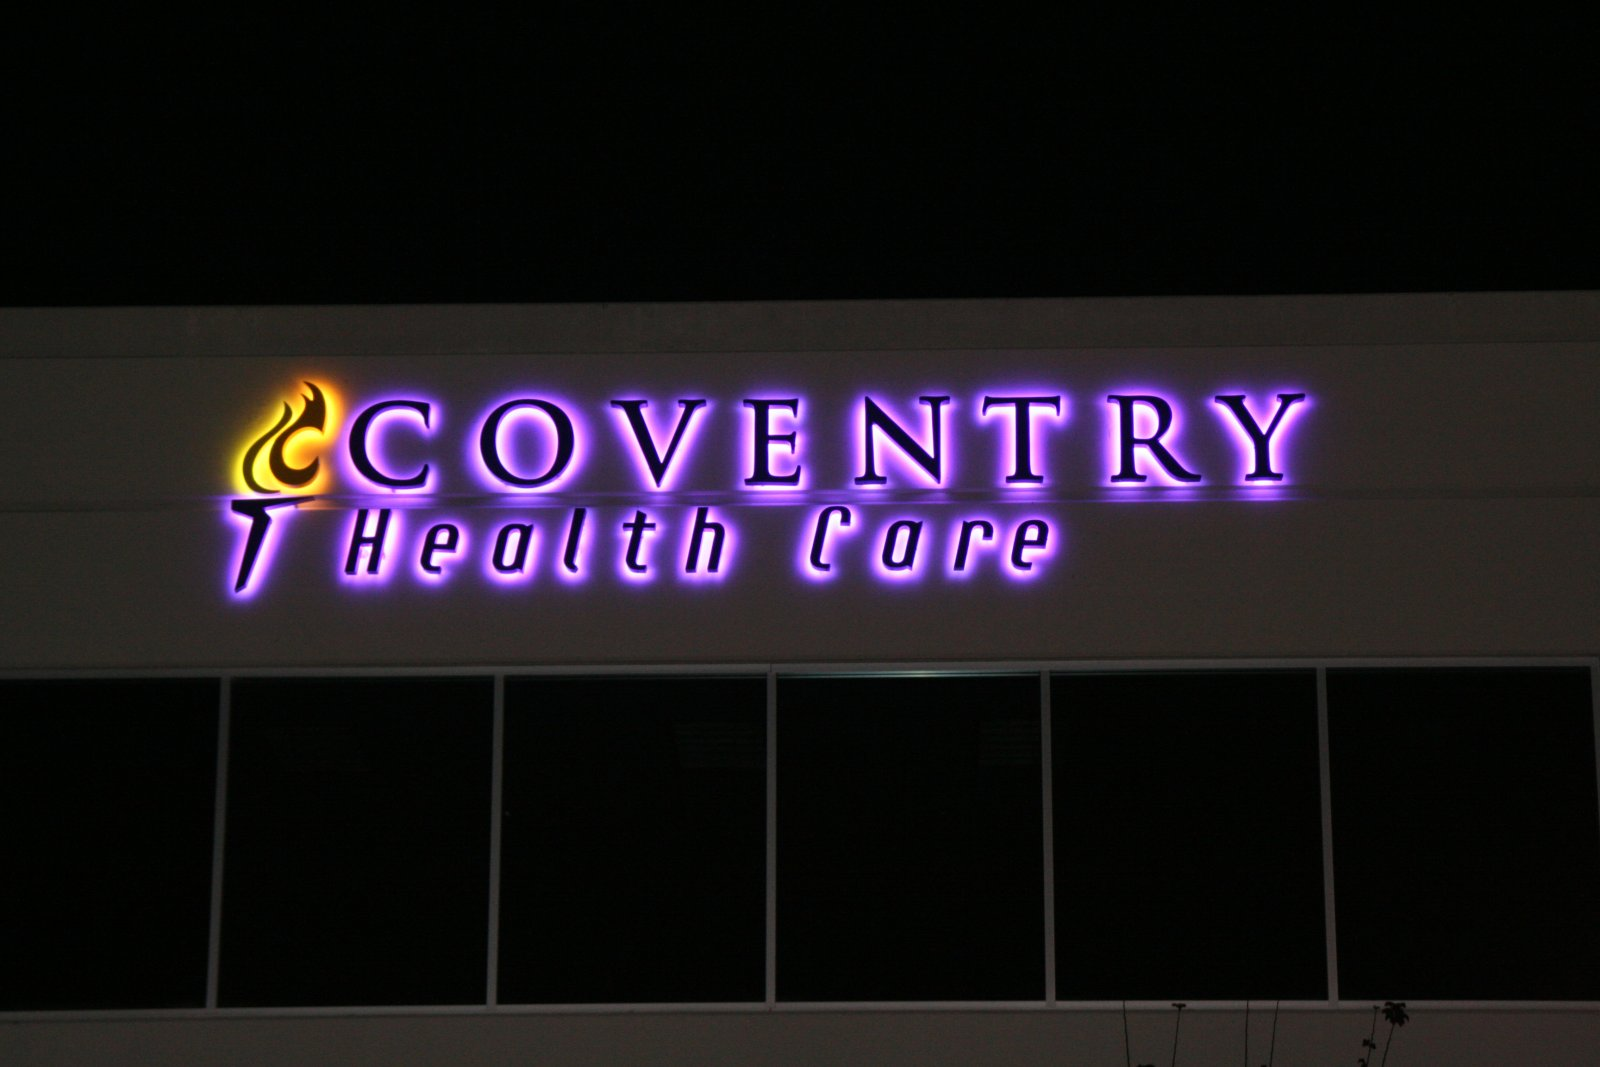 Coventry Health Care - Scripps Ranch, San Diego